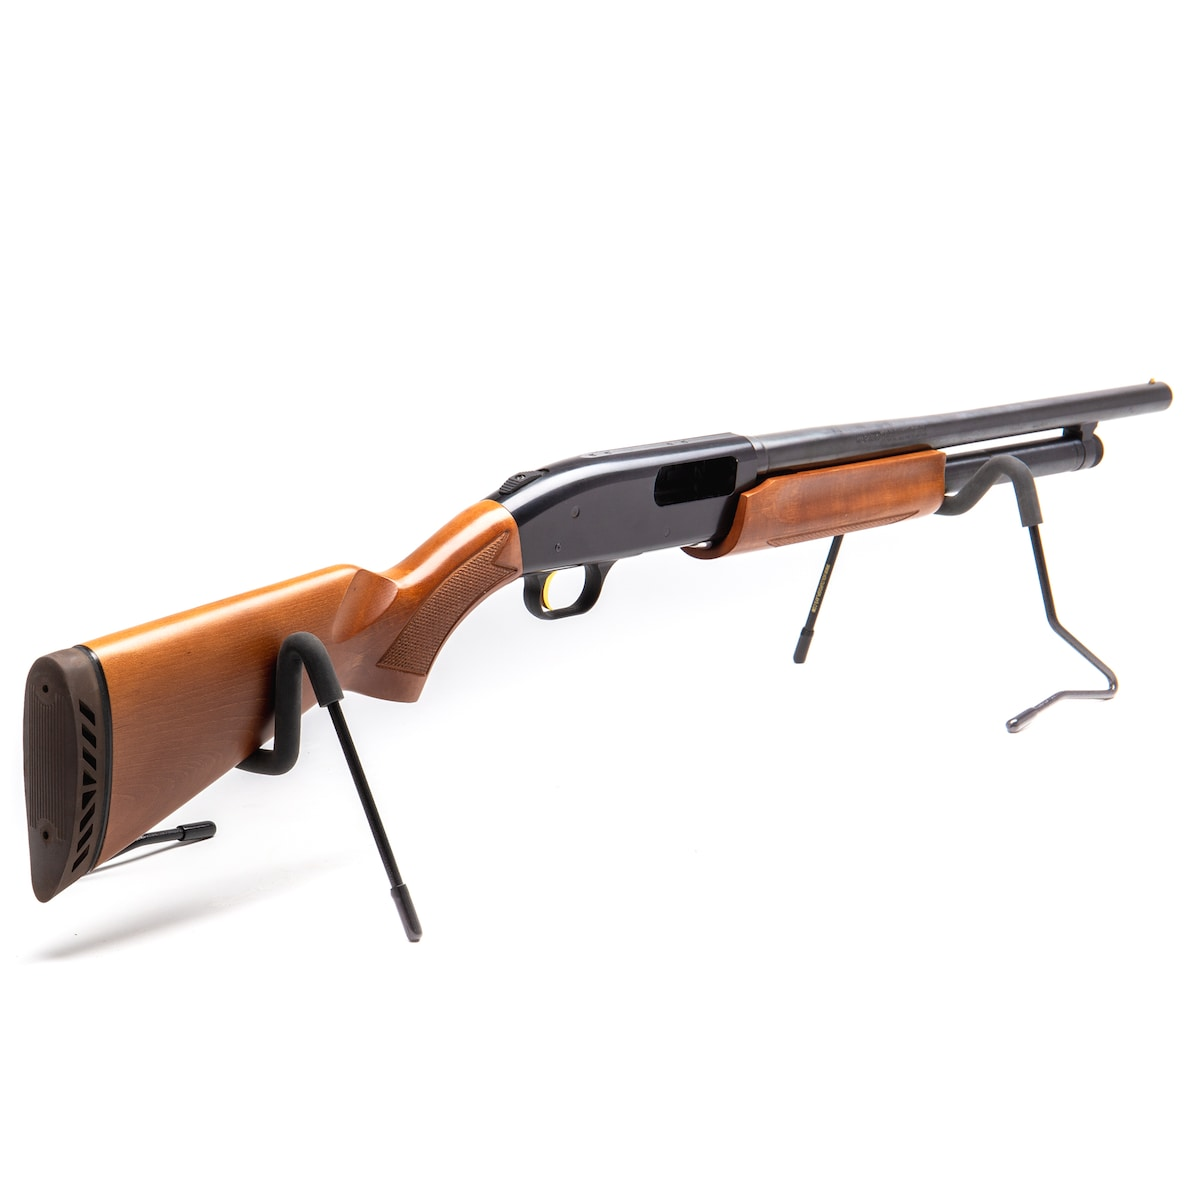 Mossberg 500 Combo Field/security - For Sale, Used - Very ...